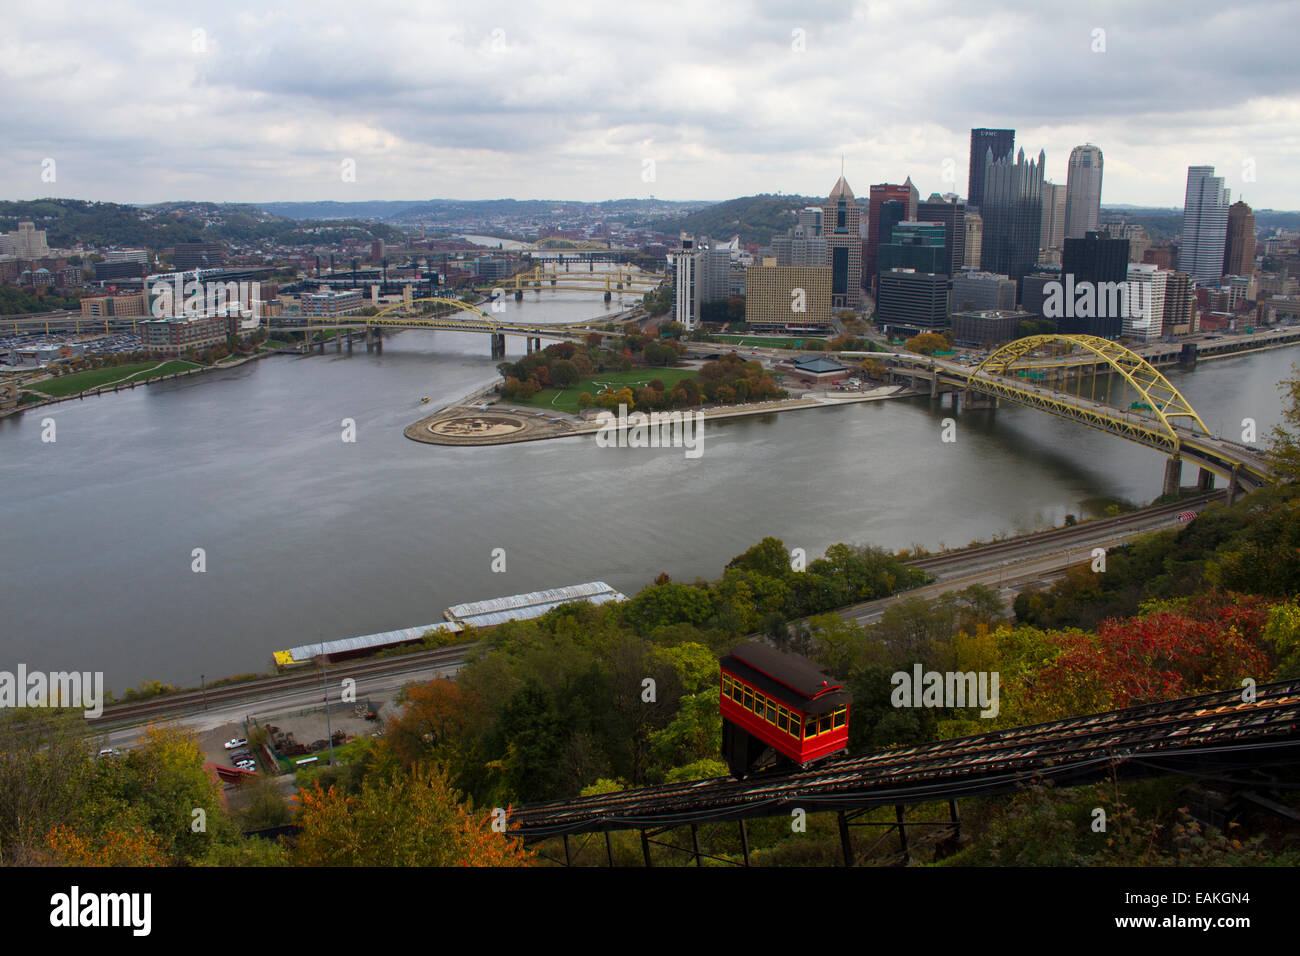 Pittsburgh, Pennsylvania with the confluence of the Ohio, Allegheny and  Monongahela rivers with the Duquesne Incline - Stock Image